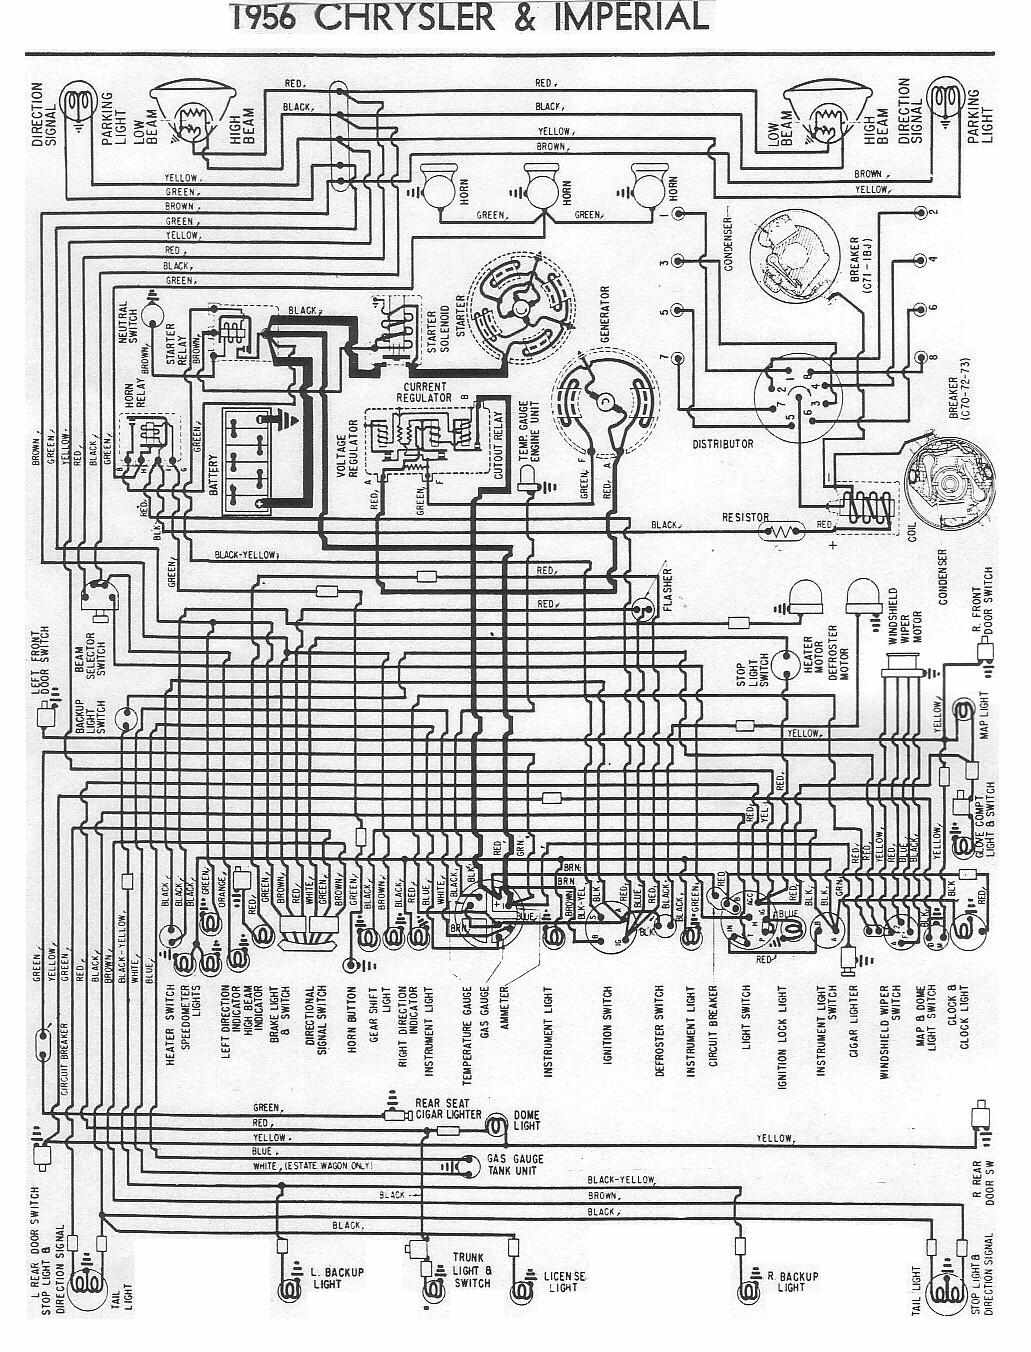 medium resolution of 1967 ford f100 wiring harness electrical wiring diagrams of 1956 chrysler and imperial